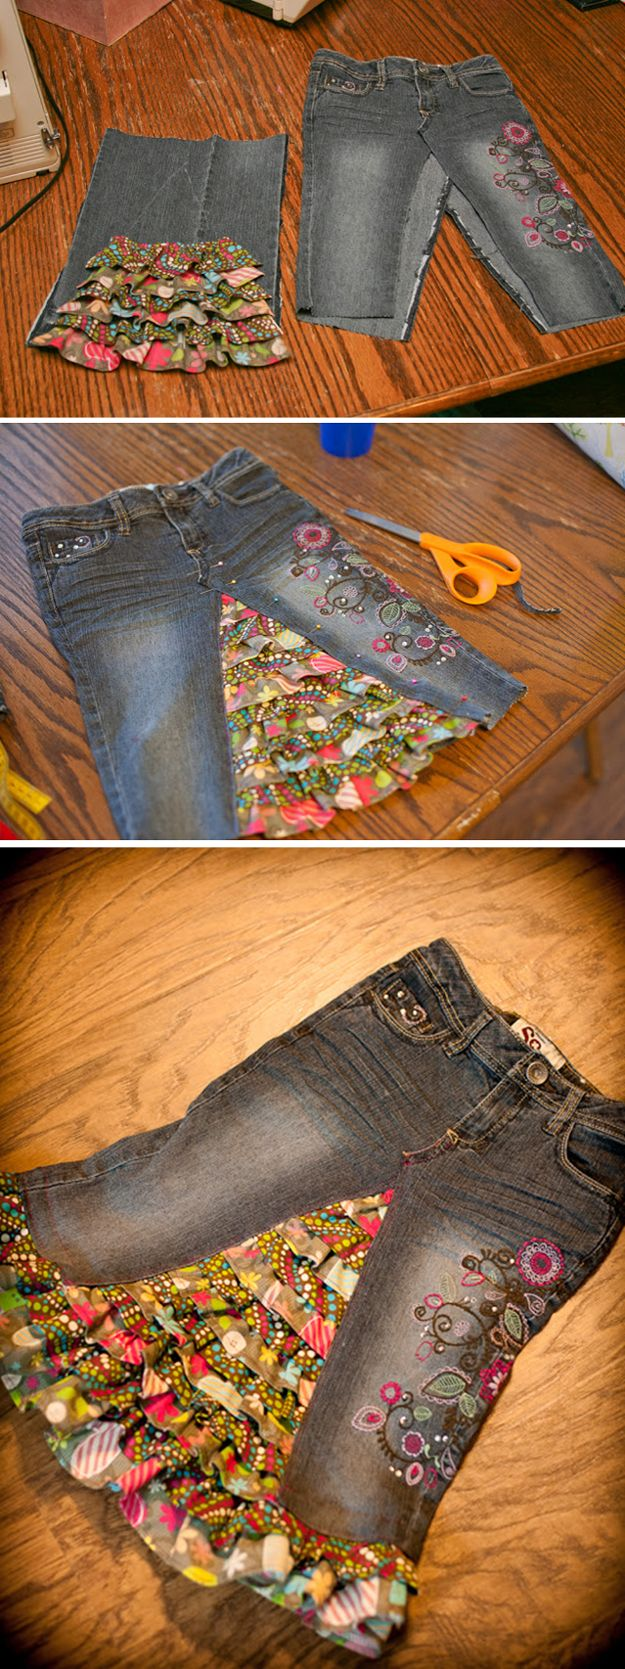 Bricolaje remodelar ideas para hacer ropa Última | http://artesaniasdebricolaje.ru/22-diy-hacks-to-make-your-clothing-last-longer/